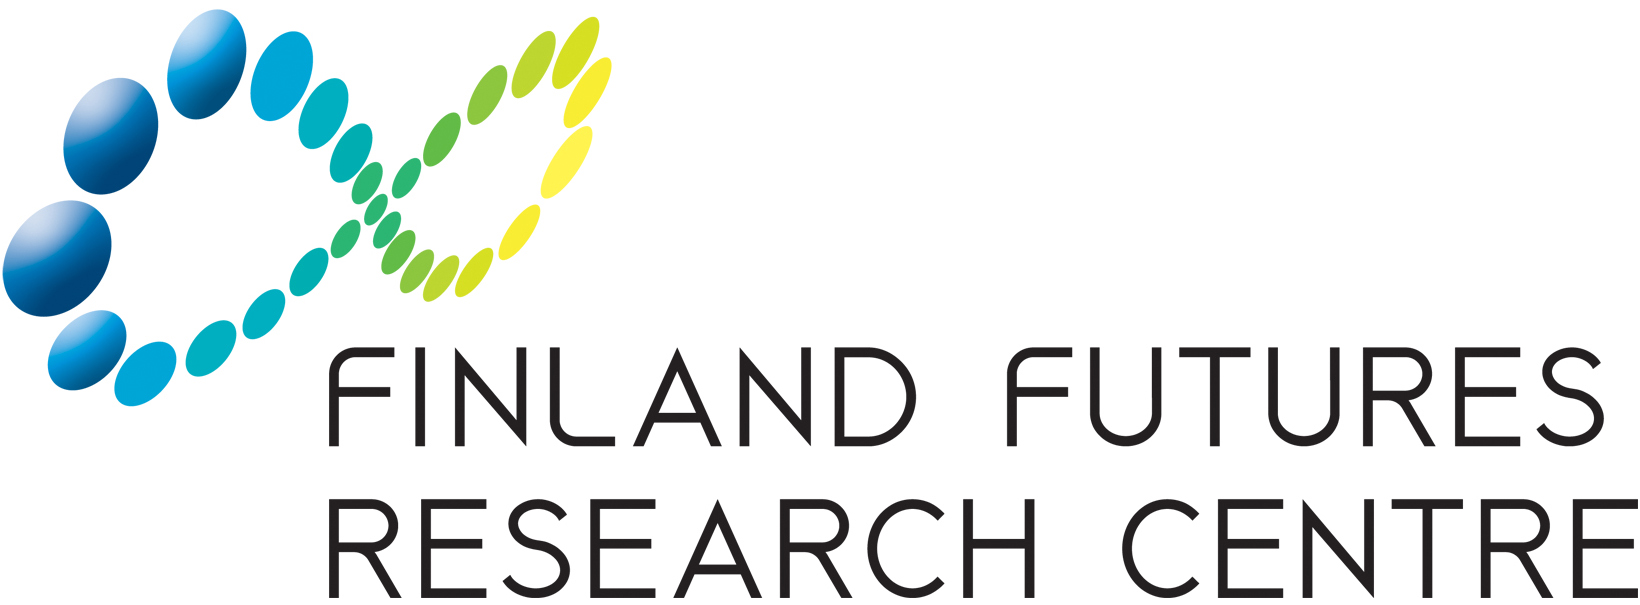 Finland Futures Research Centre